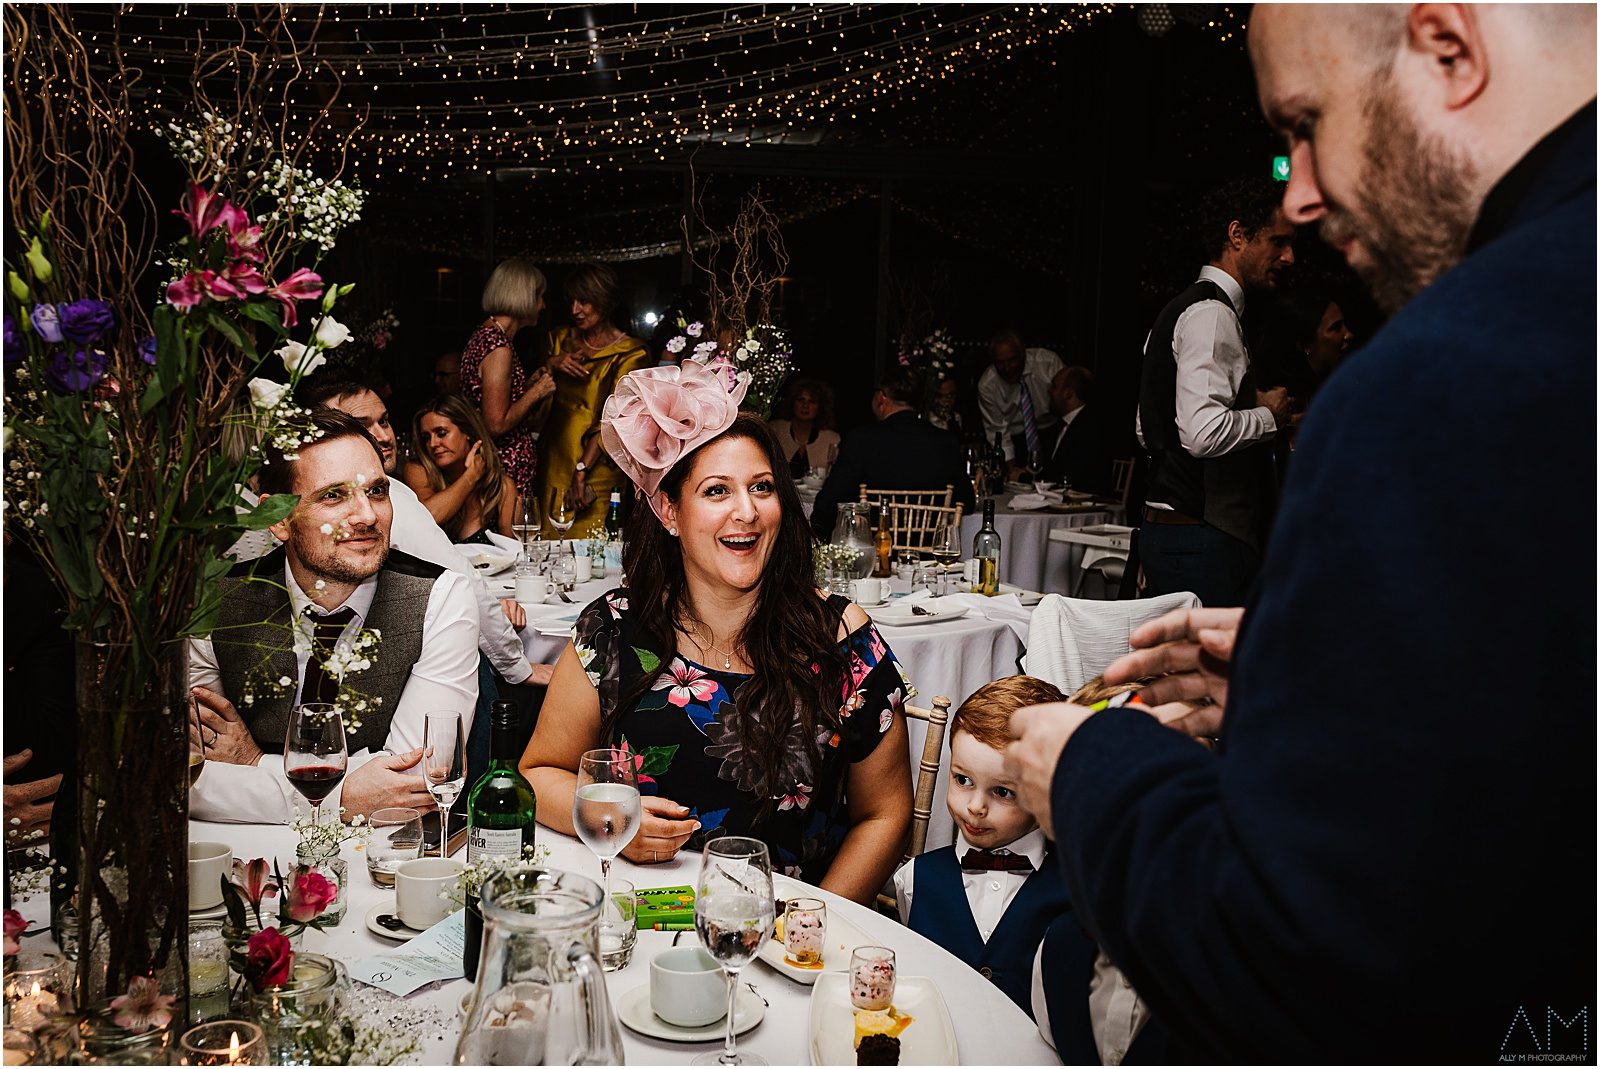 Magician entertaining the wedding guests